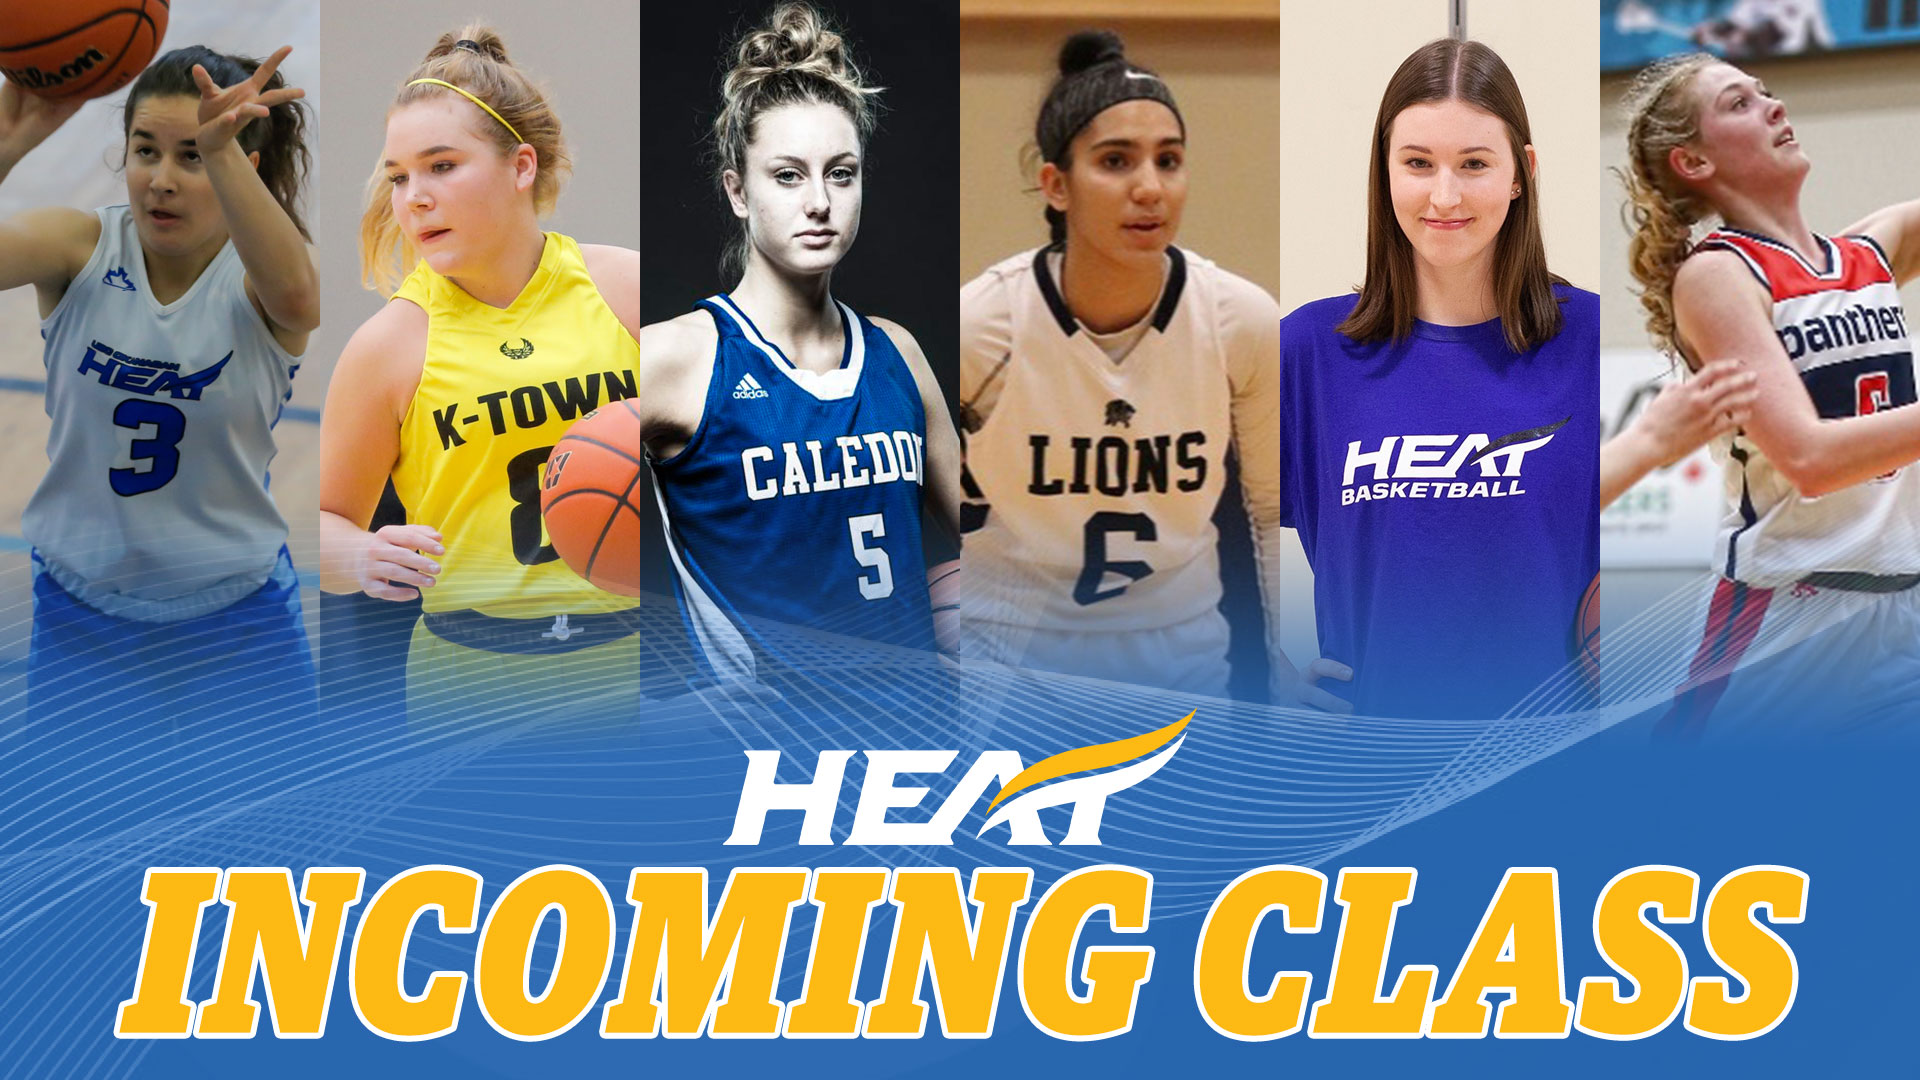 Heat women's basketball's 2020 incoming class